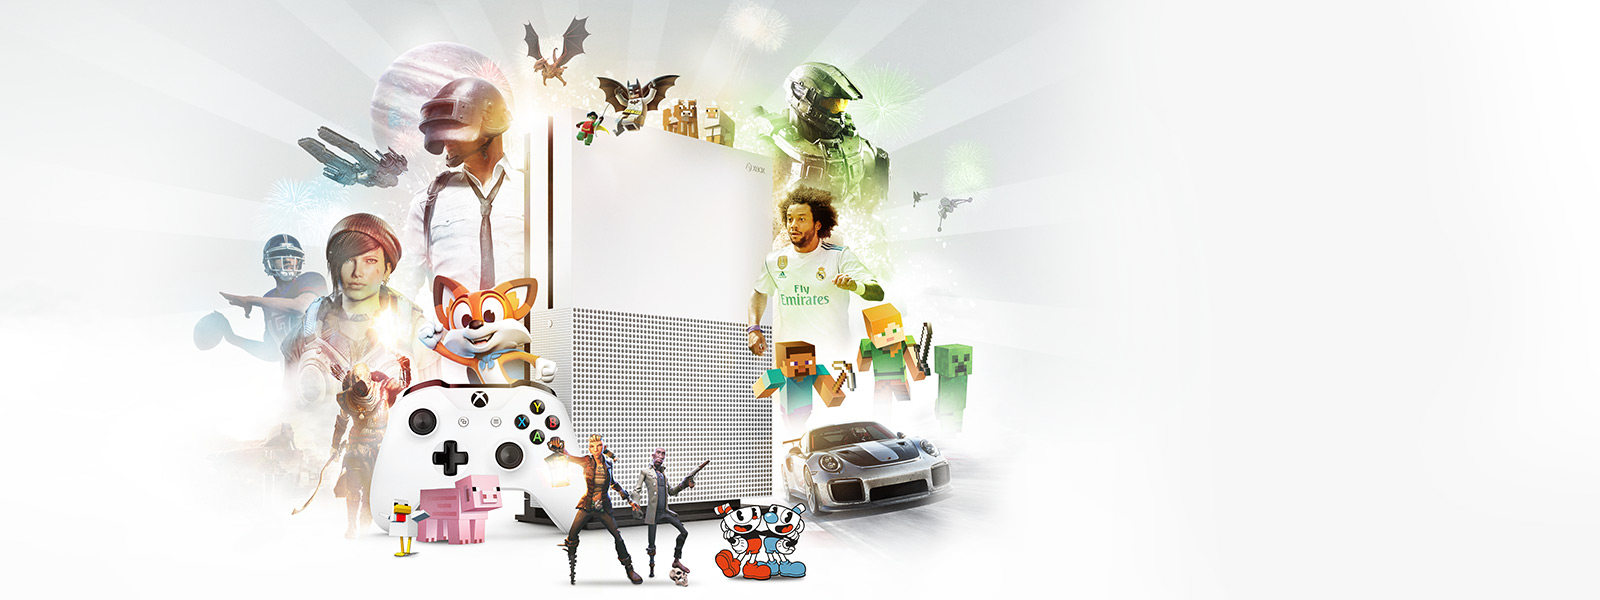 Xbox One S with Exclusive Titles